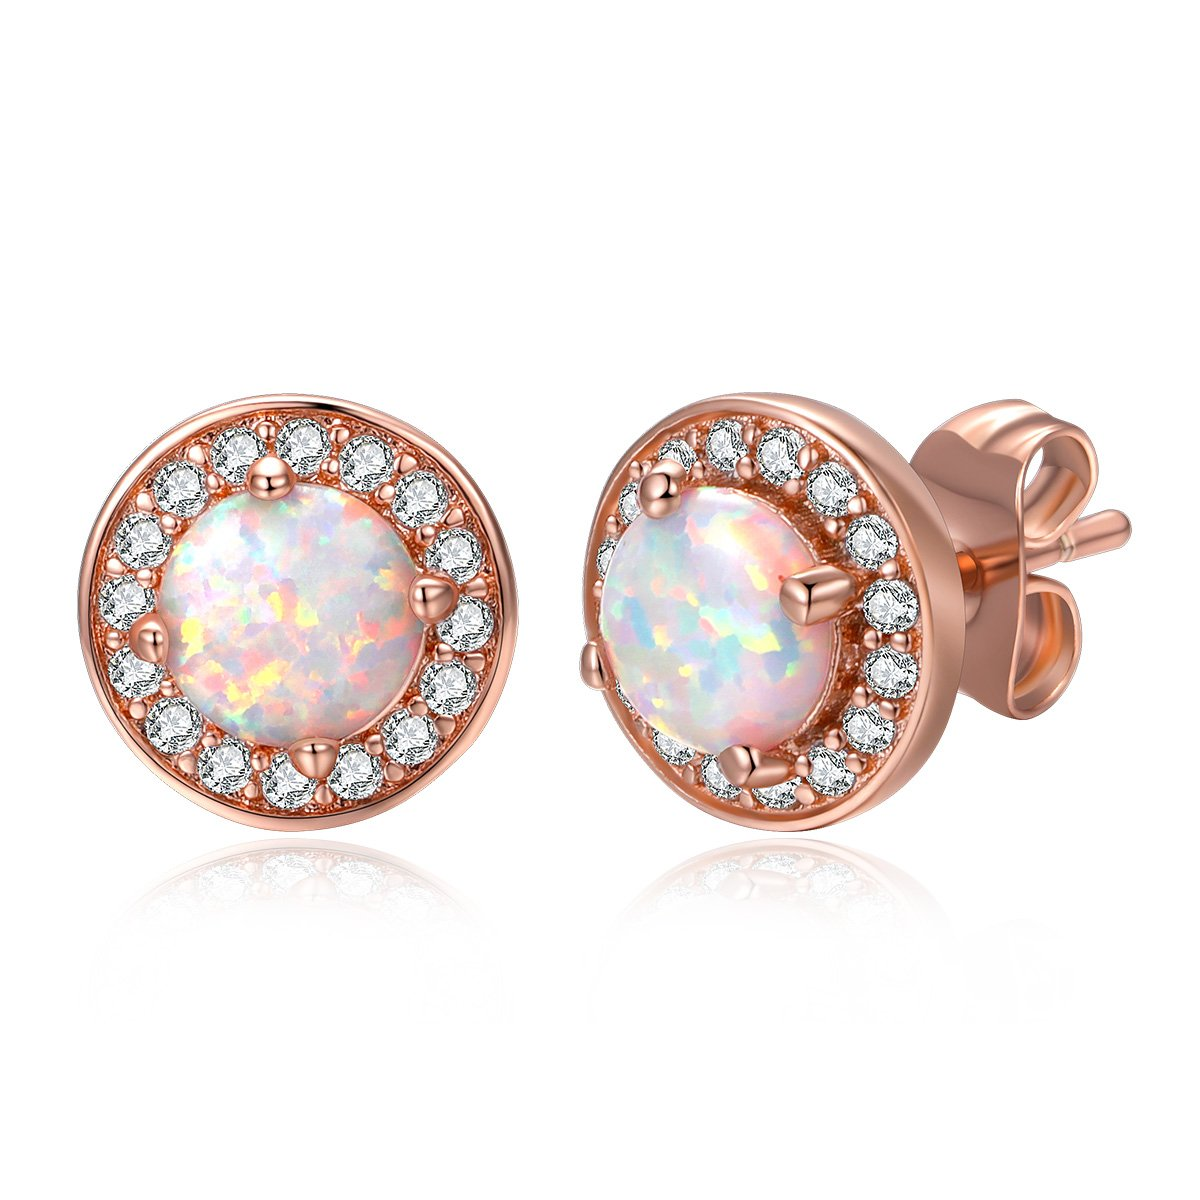 DwearBeauty White/Rose Gold Plated Stud Cubic Zirconia and Opal Earrings B0781NBV1V_US